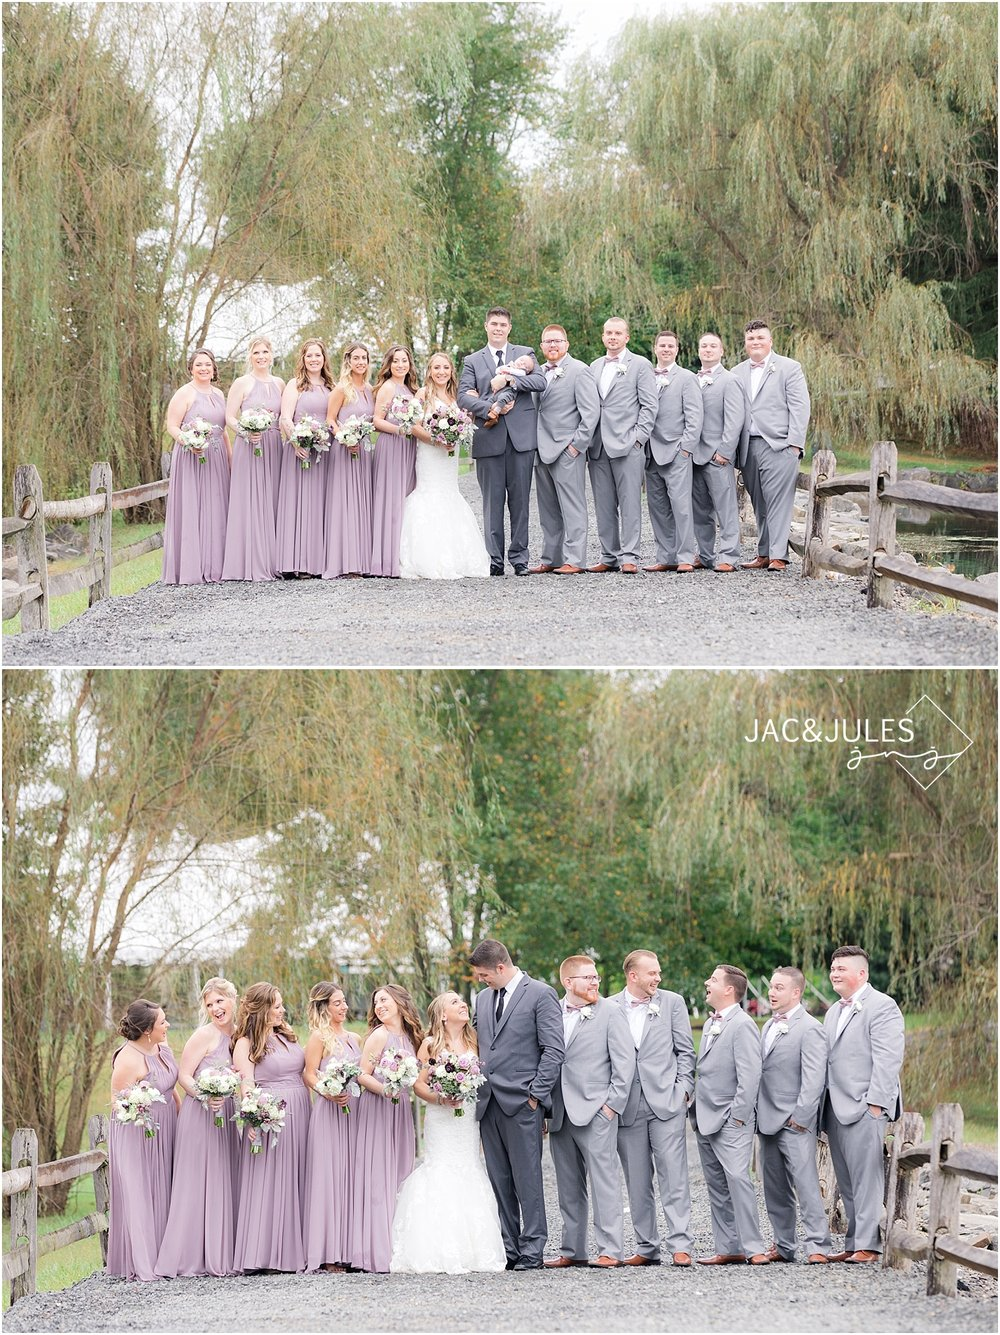 bridal party in lavender dresses and gray suits at frogbridge wedding